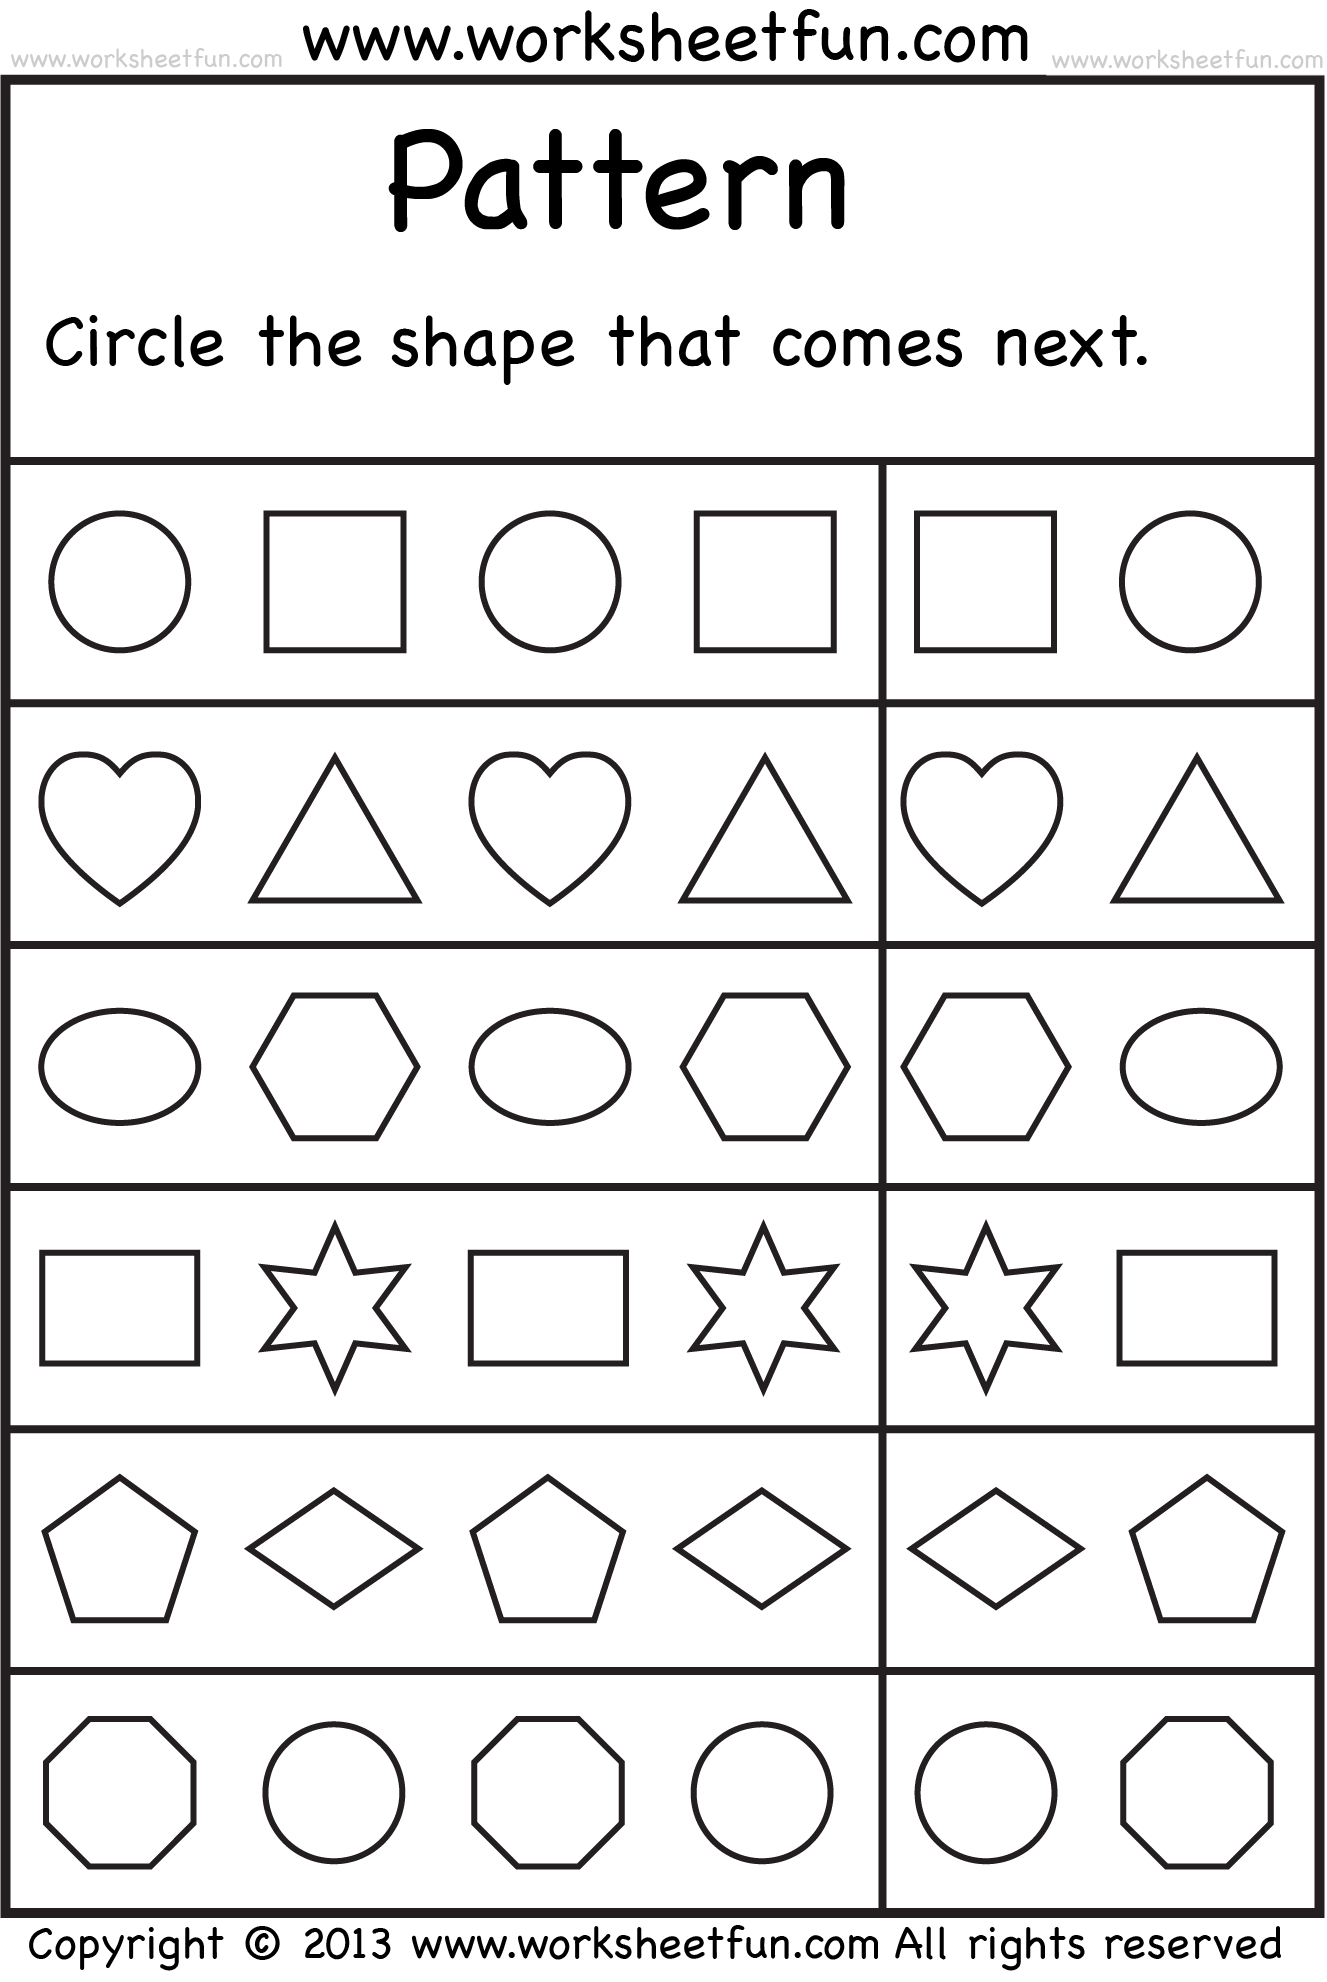 Weirdmailus  Winsome  Images About School Worksheets On Pinterest  Number Words  With Gorgeous  Images About School Worksheets On Pinterest  Number Words Alphabet Worksheets And Free Printable Kindergarten Worksheets With Lovely Algebra Worksheets For Th Grade Also Worksheets On Sentences In Addition Worksheet On Multiplication For Grade  And Worksheet On Preposition For Grade  As Well As Free Printable Maths Worksheets Additionally Arithmetic Worksheets Printable From Pinterestcom With Weirdmailus  Gorgeous  Images About School Worksheets On Pinterest  Number Words  With Lovely  Images About School Worksheets On Pinterest  Number Words Alphabet Worksheets And Free Printable Kindergarten Worksheets And Winsome Algebra Worksheets For Th Grade Also Worksheets On Sentences In Addition Worksheet On Multiplication For Grade  From Pinterestcom